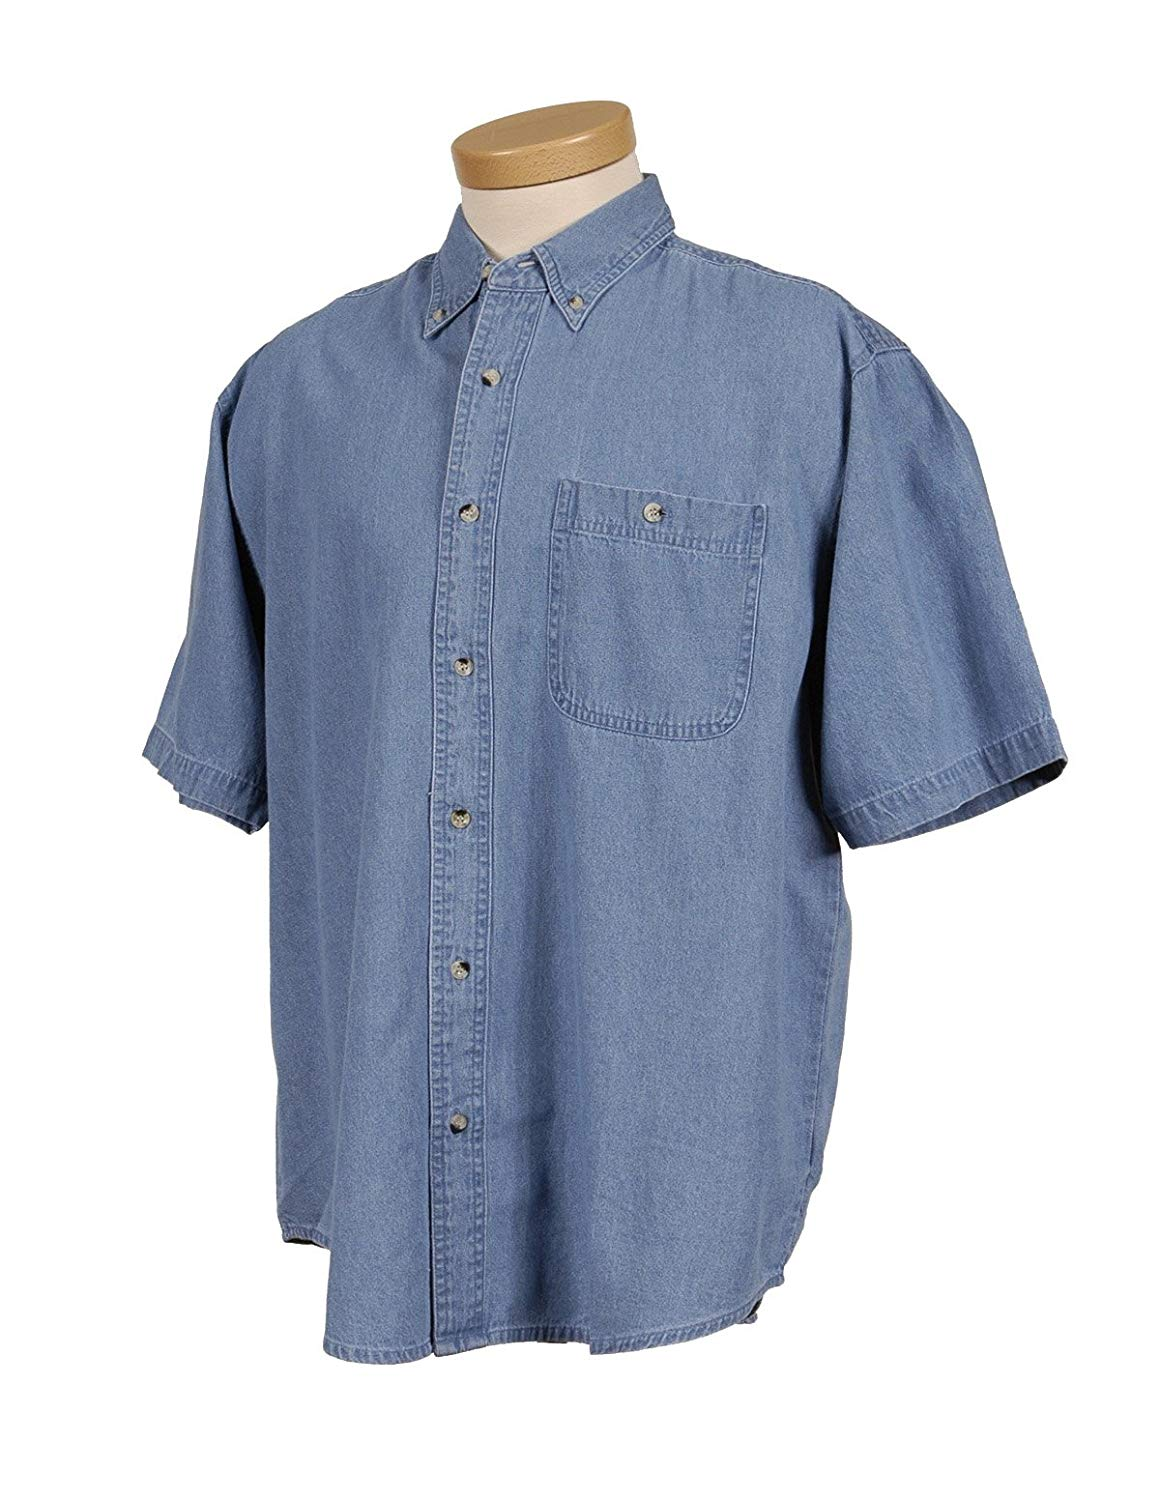 0847227087f Get Quotations · Tri-Mountain Men s 100% Cotton Scout Stonewashed Denim  Shirt (3 Colors